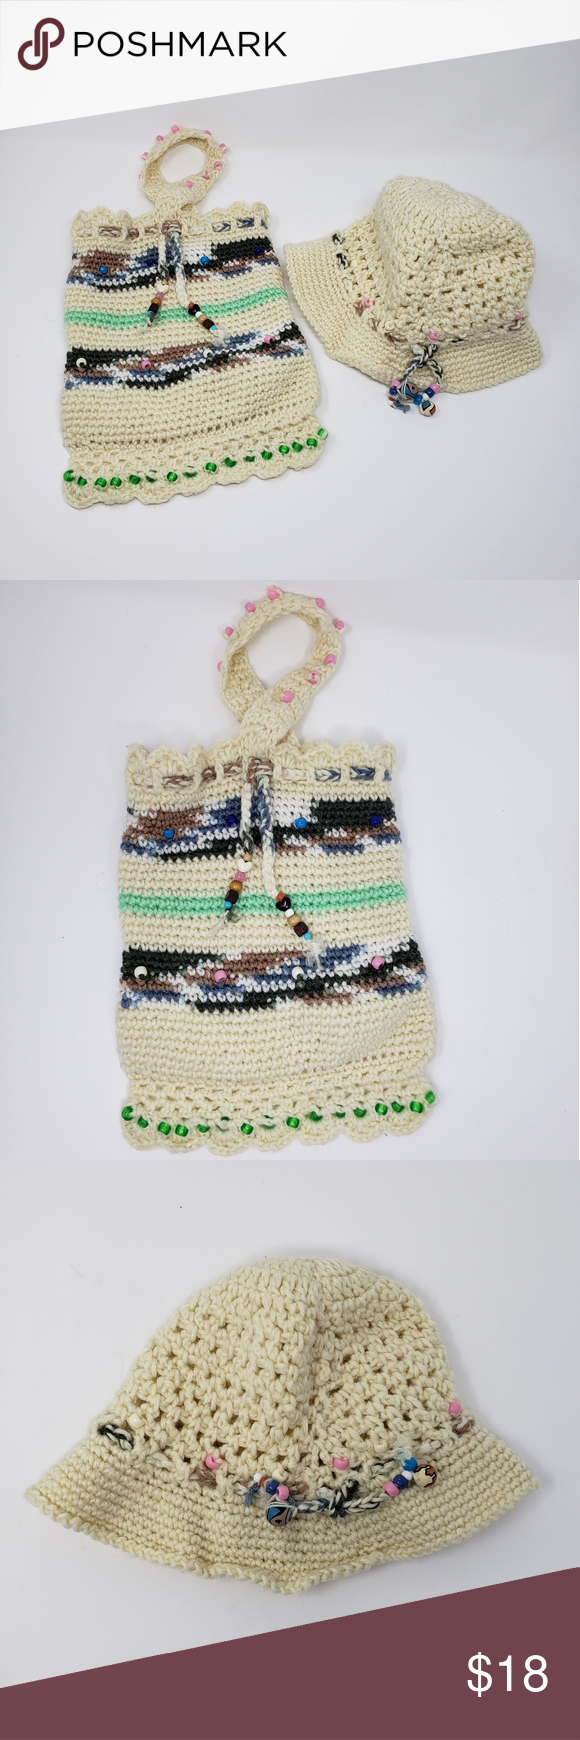 Vintage Crocheted Hat and Purse